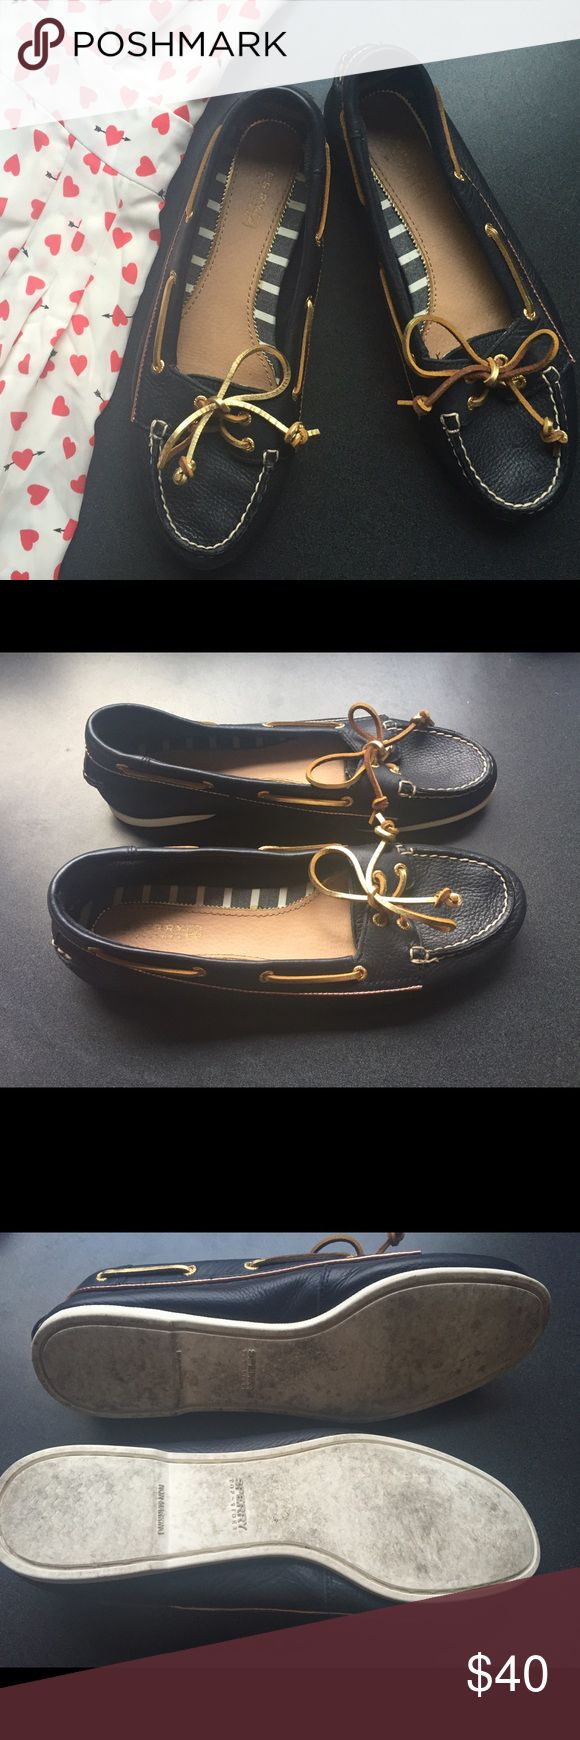 Navy + gold leather Sperry Topsiders (Audrey) Preppy, girly Sperrys...worn only a handful of times. Leather upper. These shoes are very soft and comfy. They don't make the Audrey anymore! Sperry Top-Sider Shoes Flats & Loafers